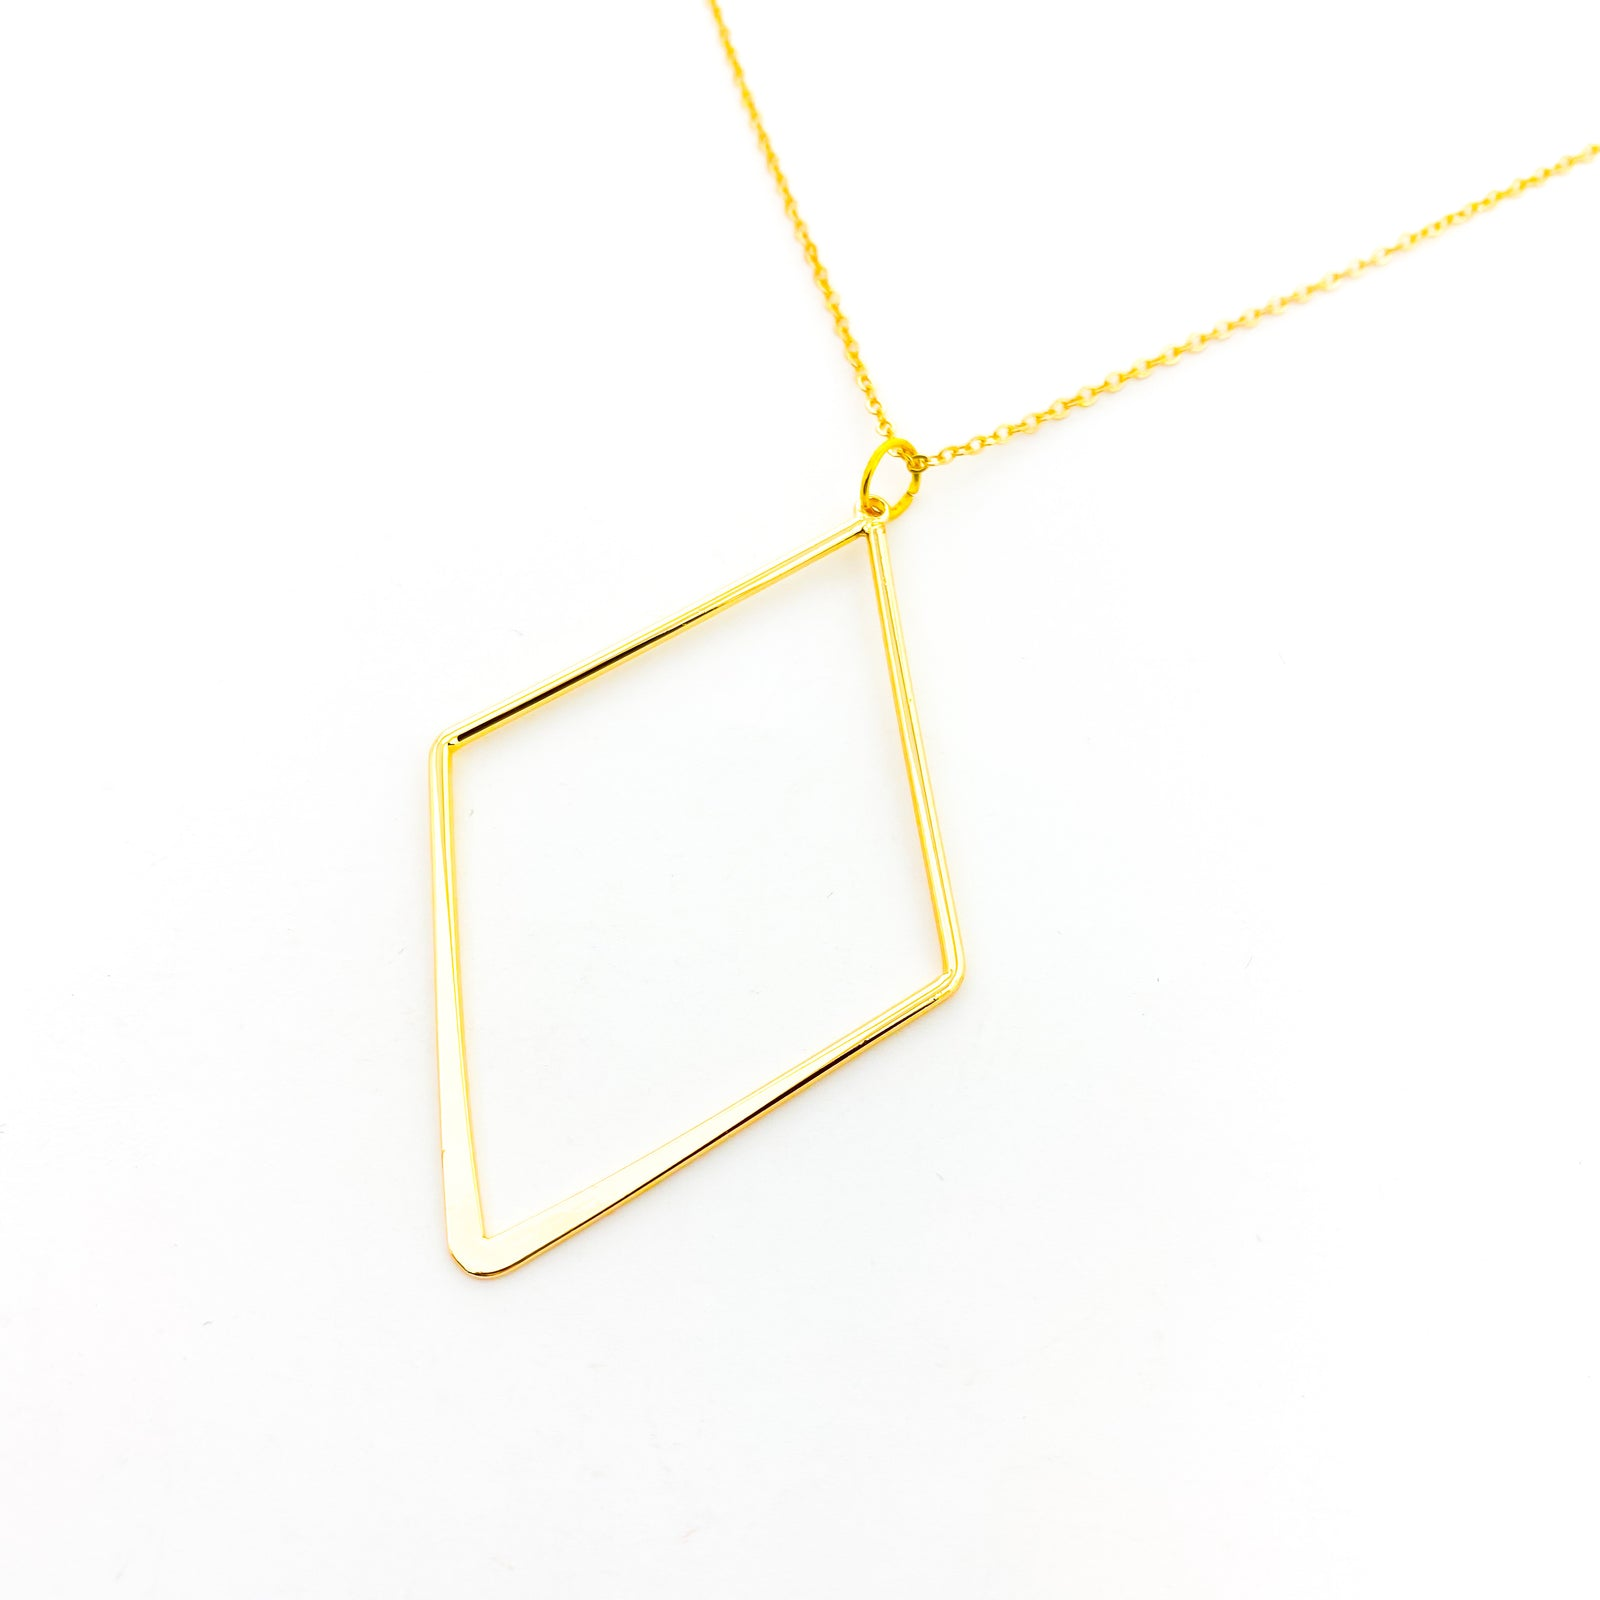 LARGE SMOOTH DIAMOND SHAPE NECKLACE | 18K GOLD-PLATED PENDANT